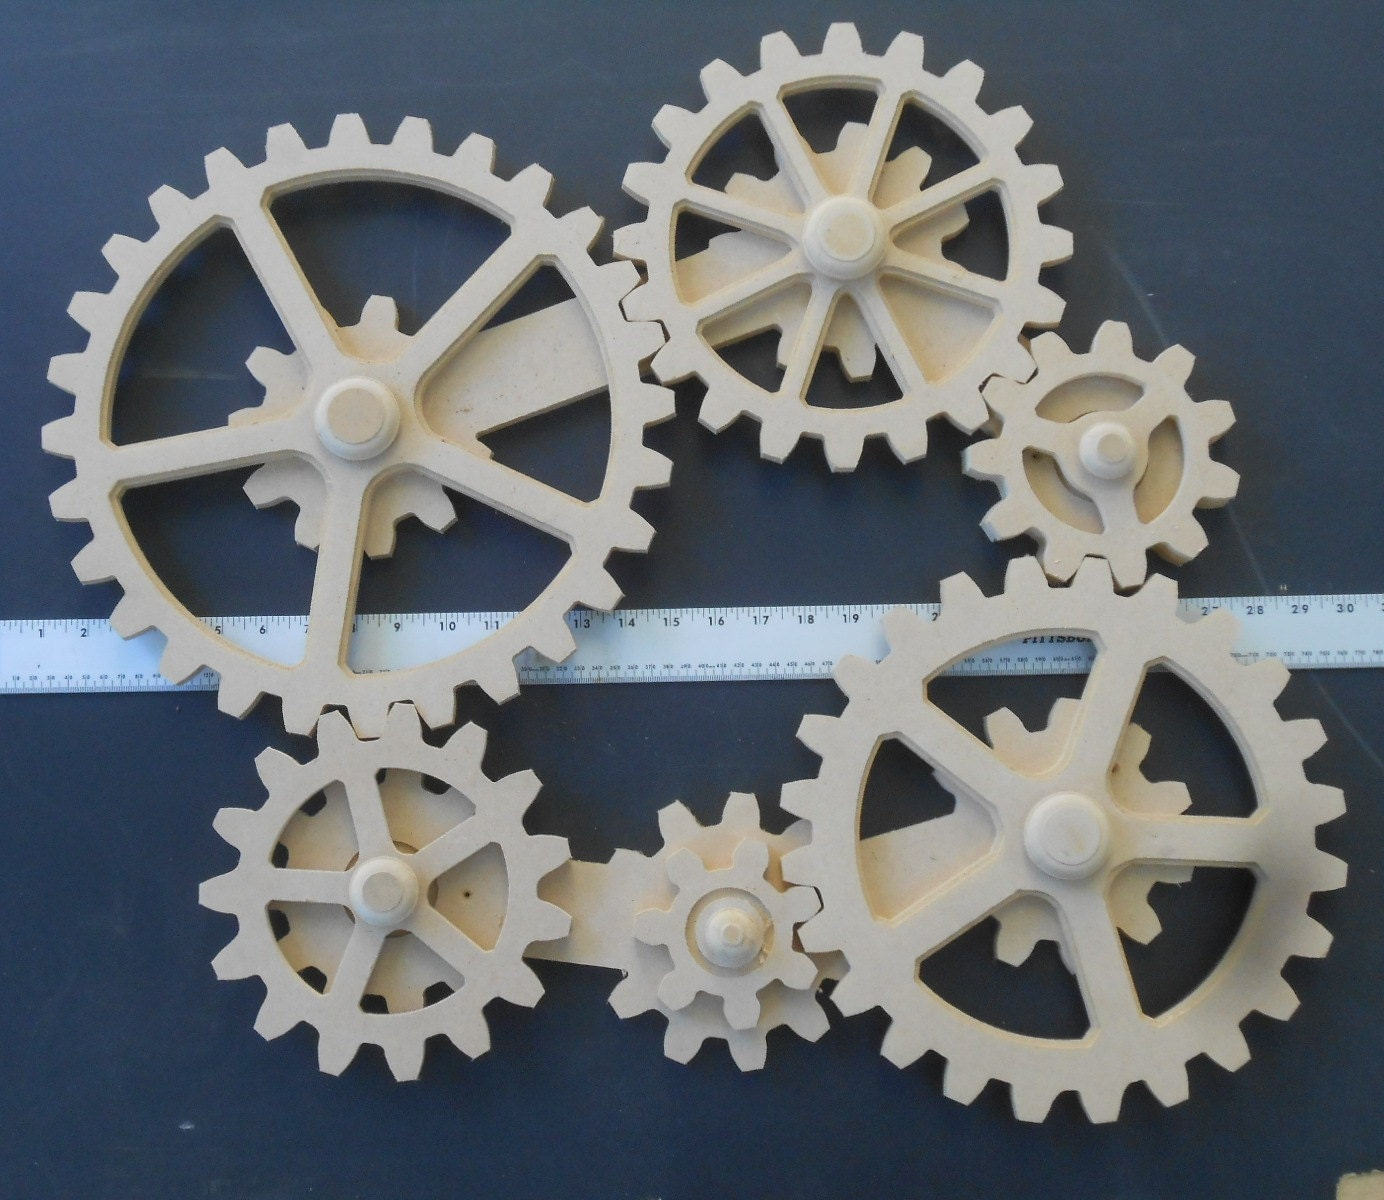 Moving Wall Art working gears wood gears gear wall kinetic art steampunk